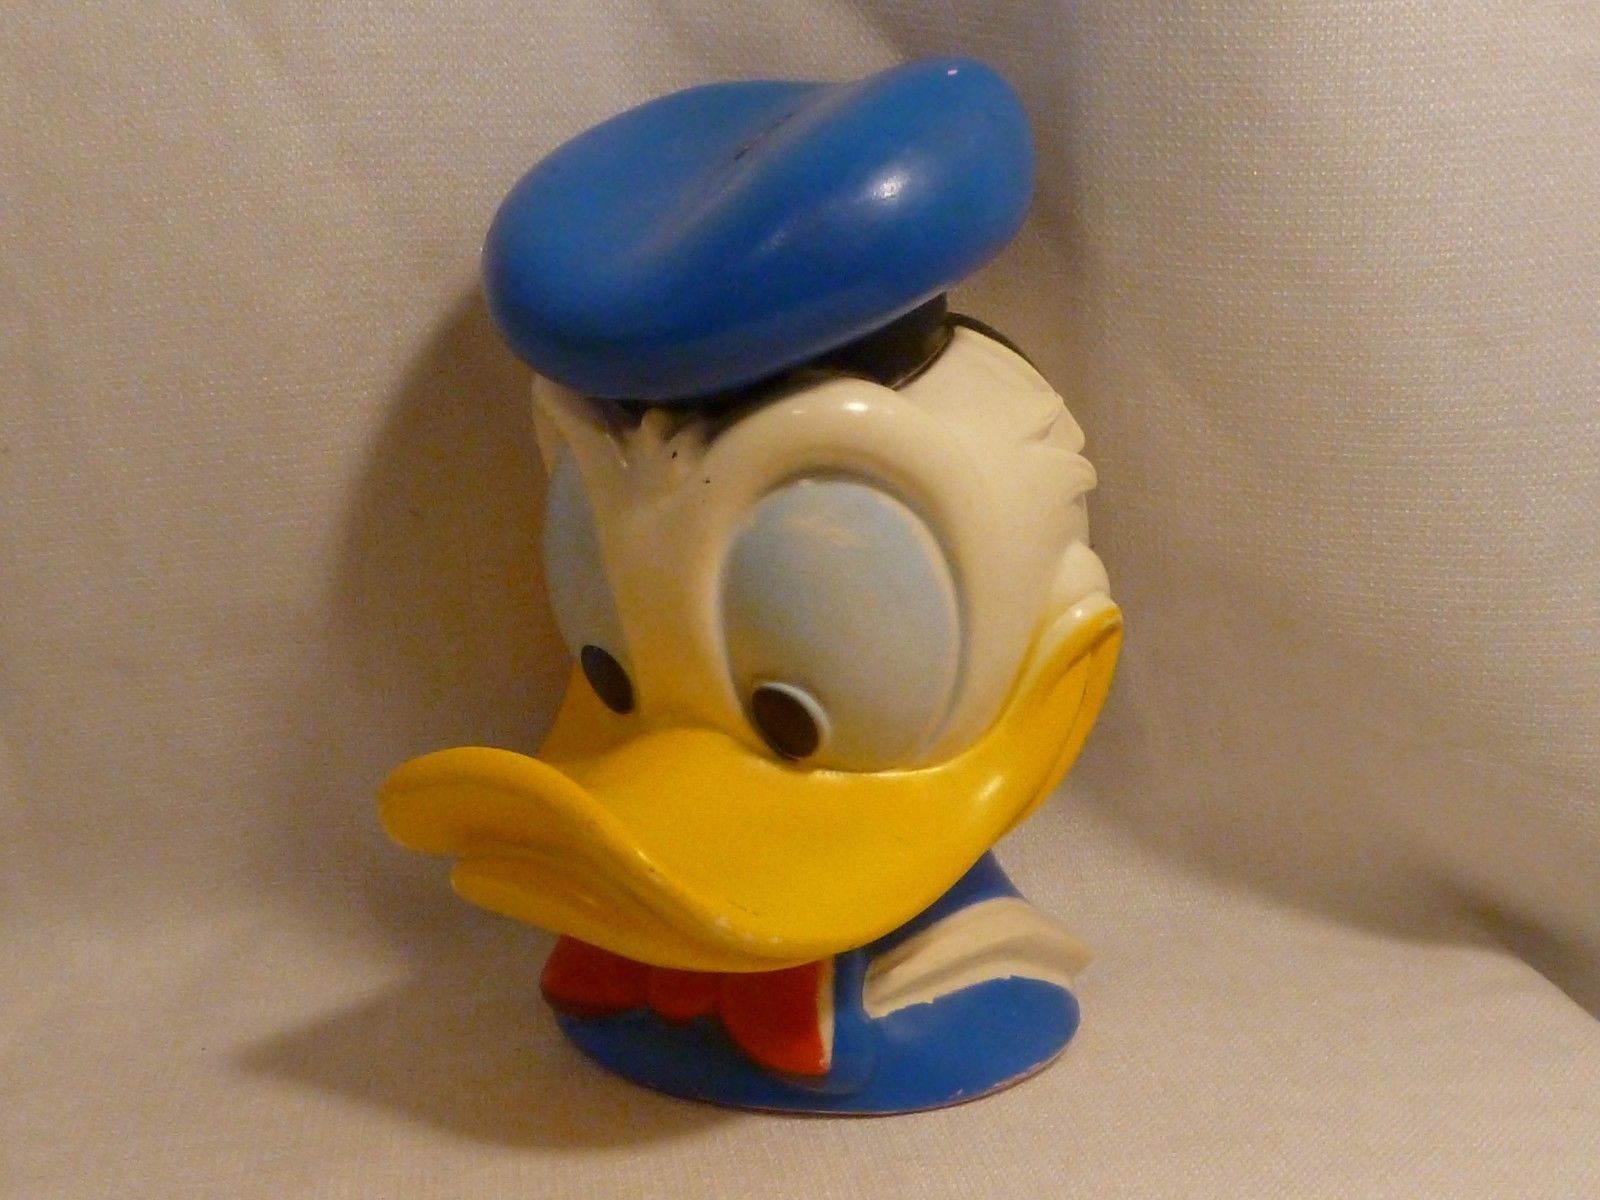 vintage 1970s Walt Disney toy DONALD DUCK and similar items